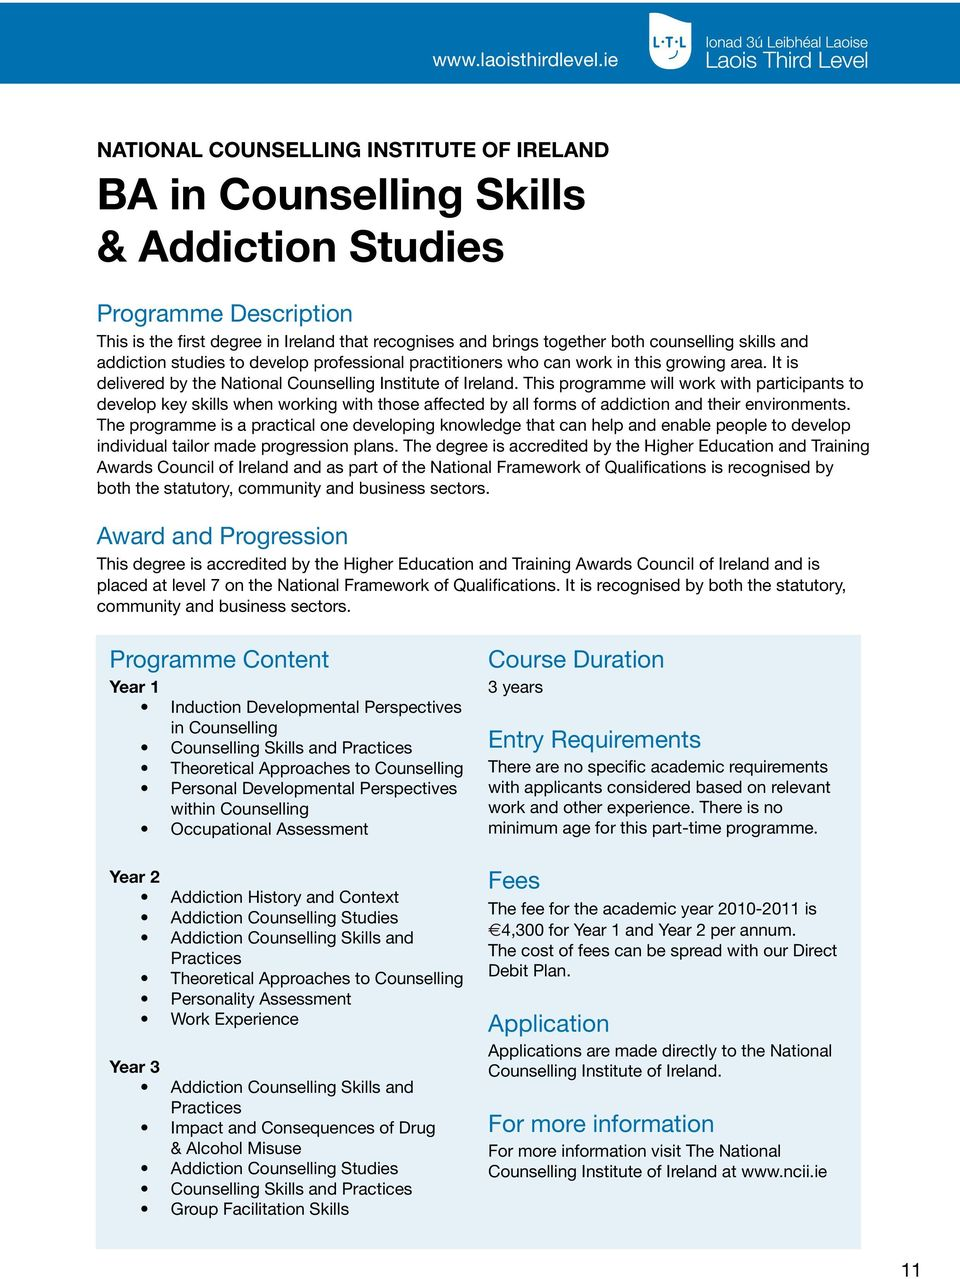 studies to develop professional practitioners who can work in this growing area. It is delivered by the National Counselling Institute of Ireland.